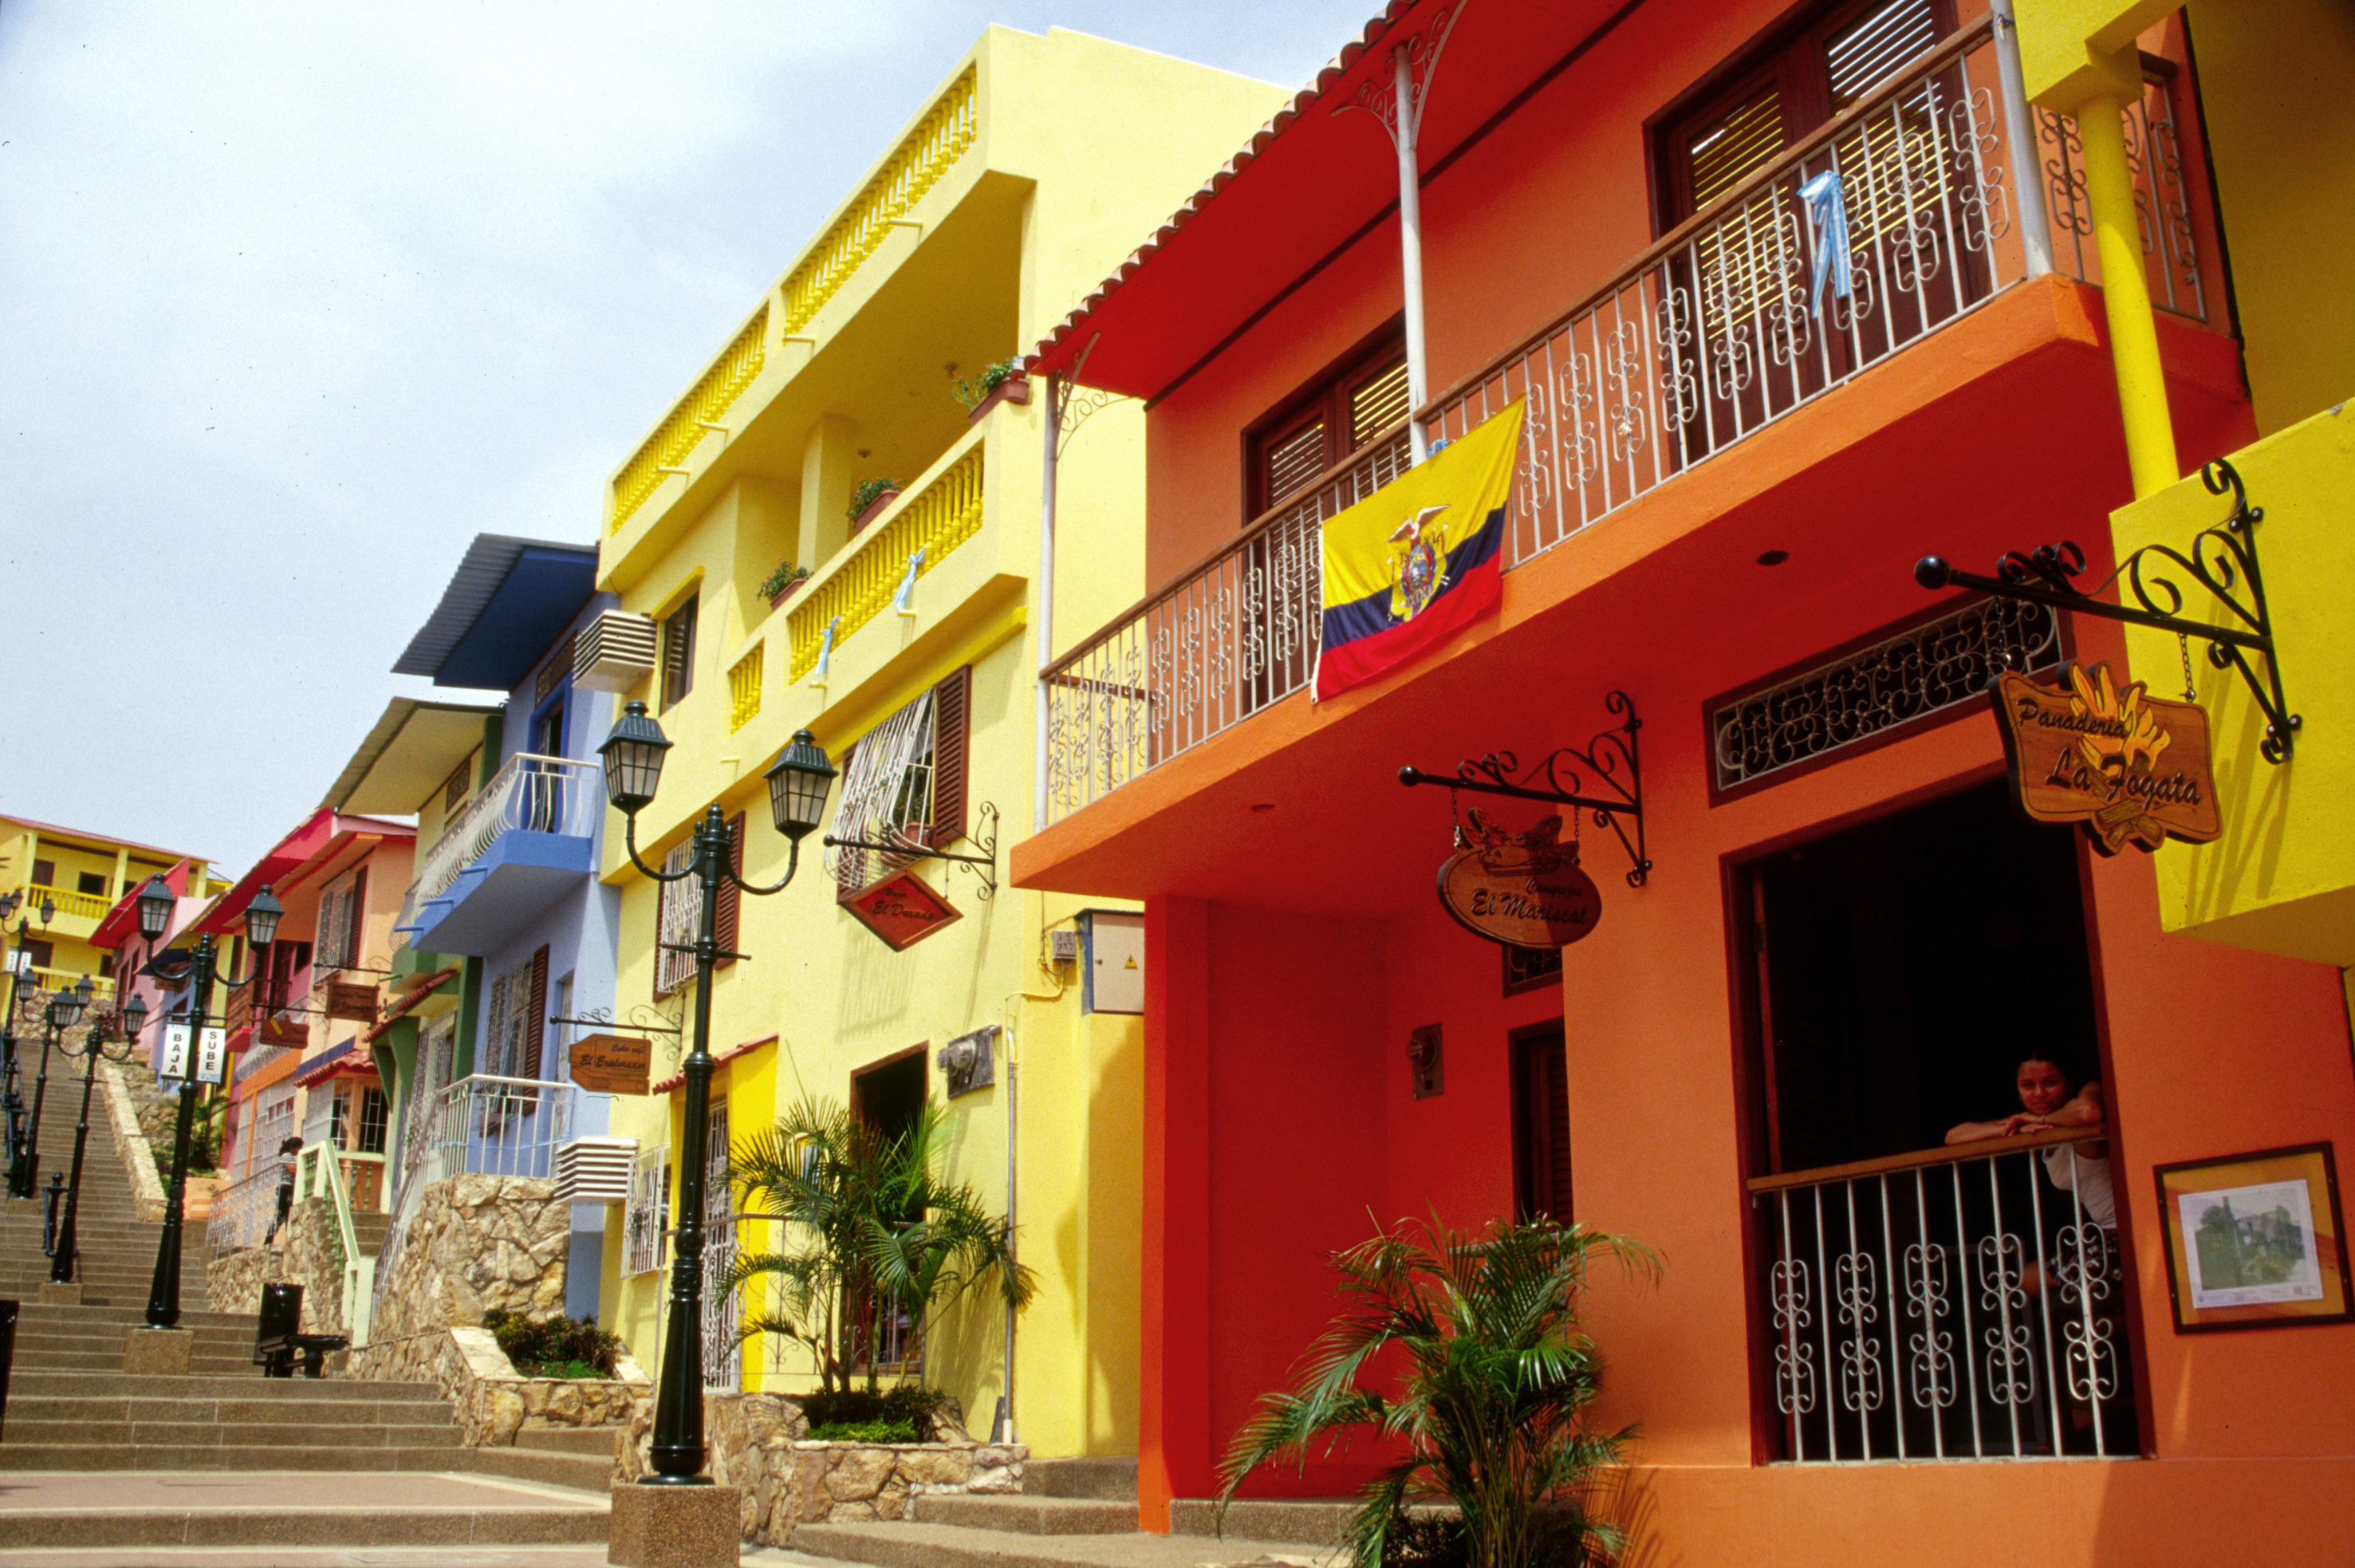 Las Penas neighborhood of Guayaquil Ecuador